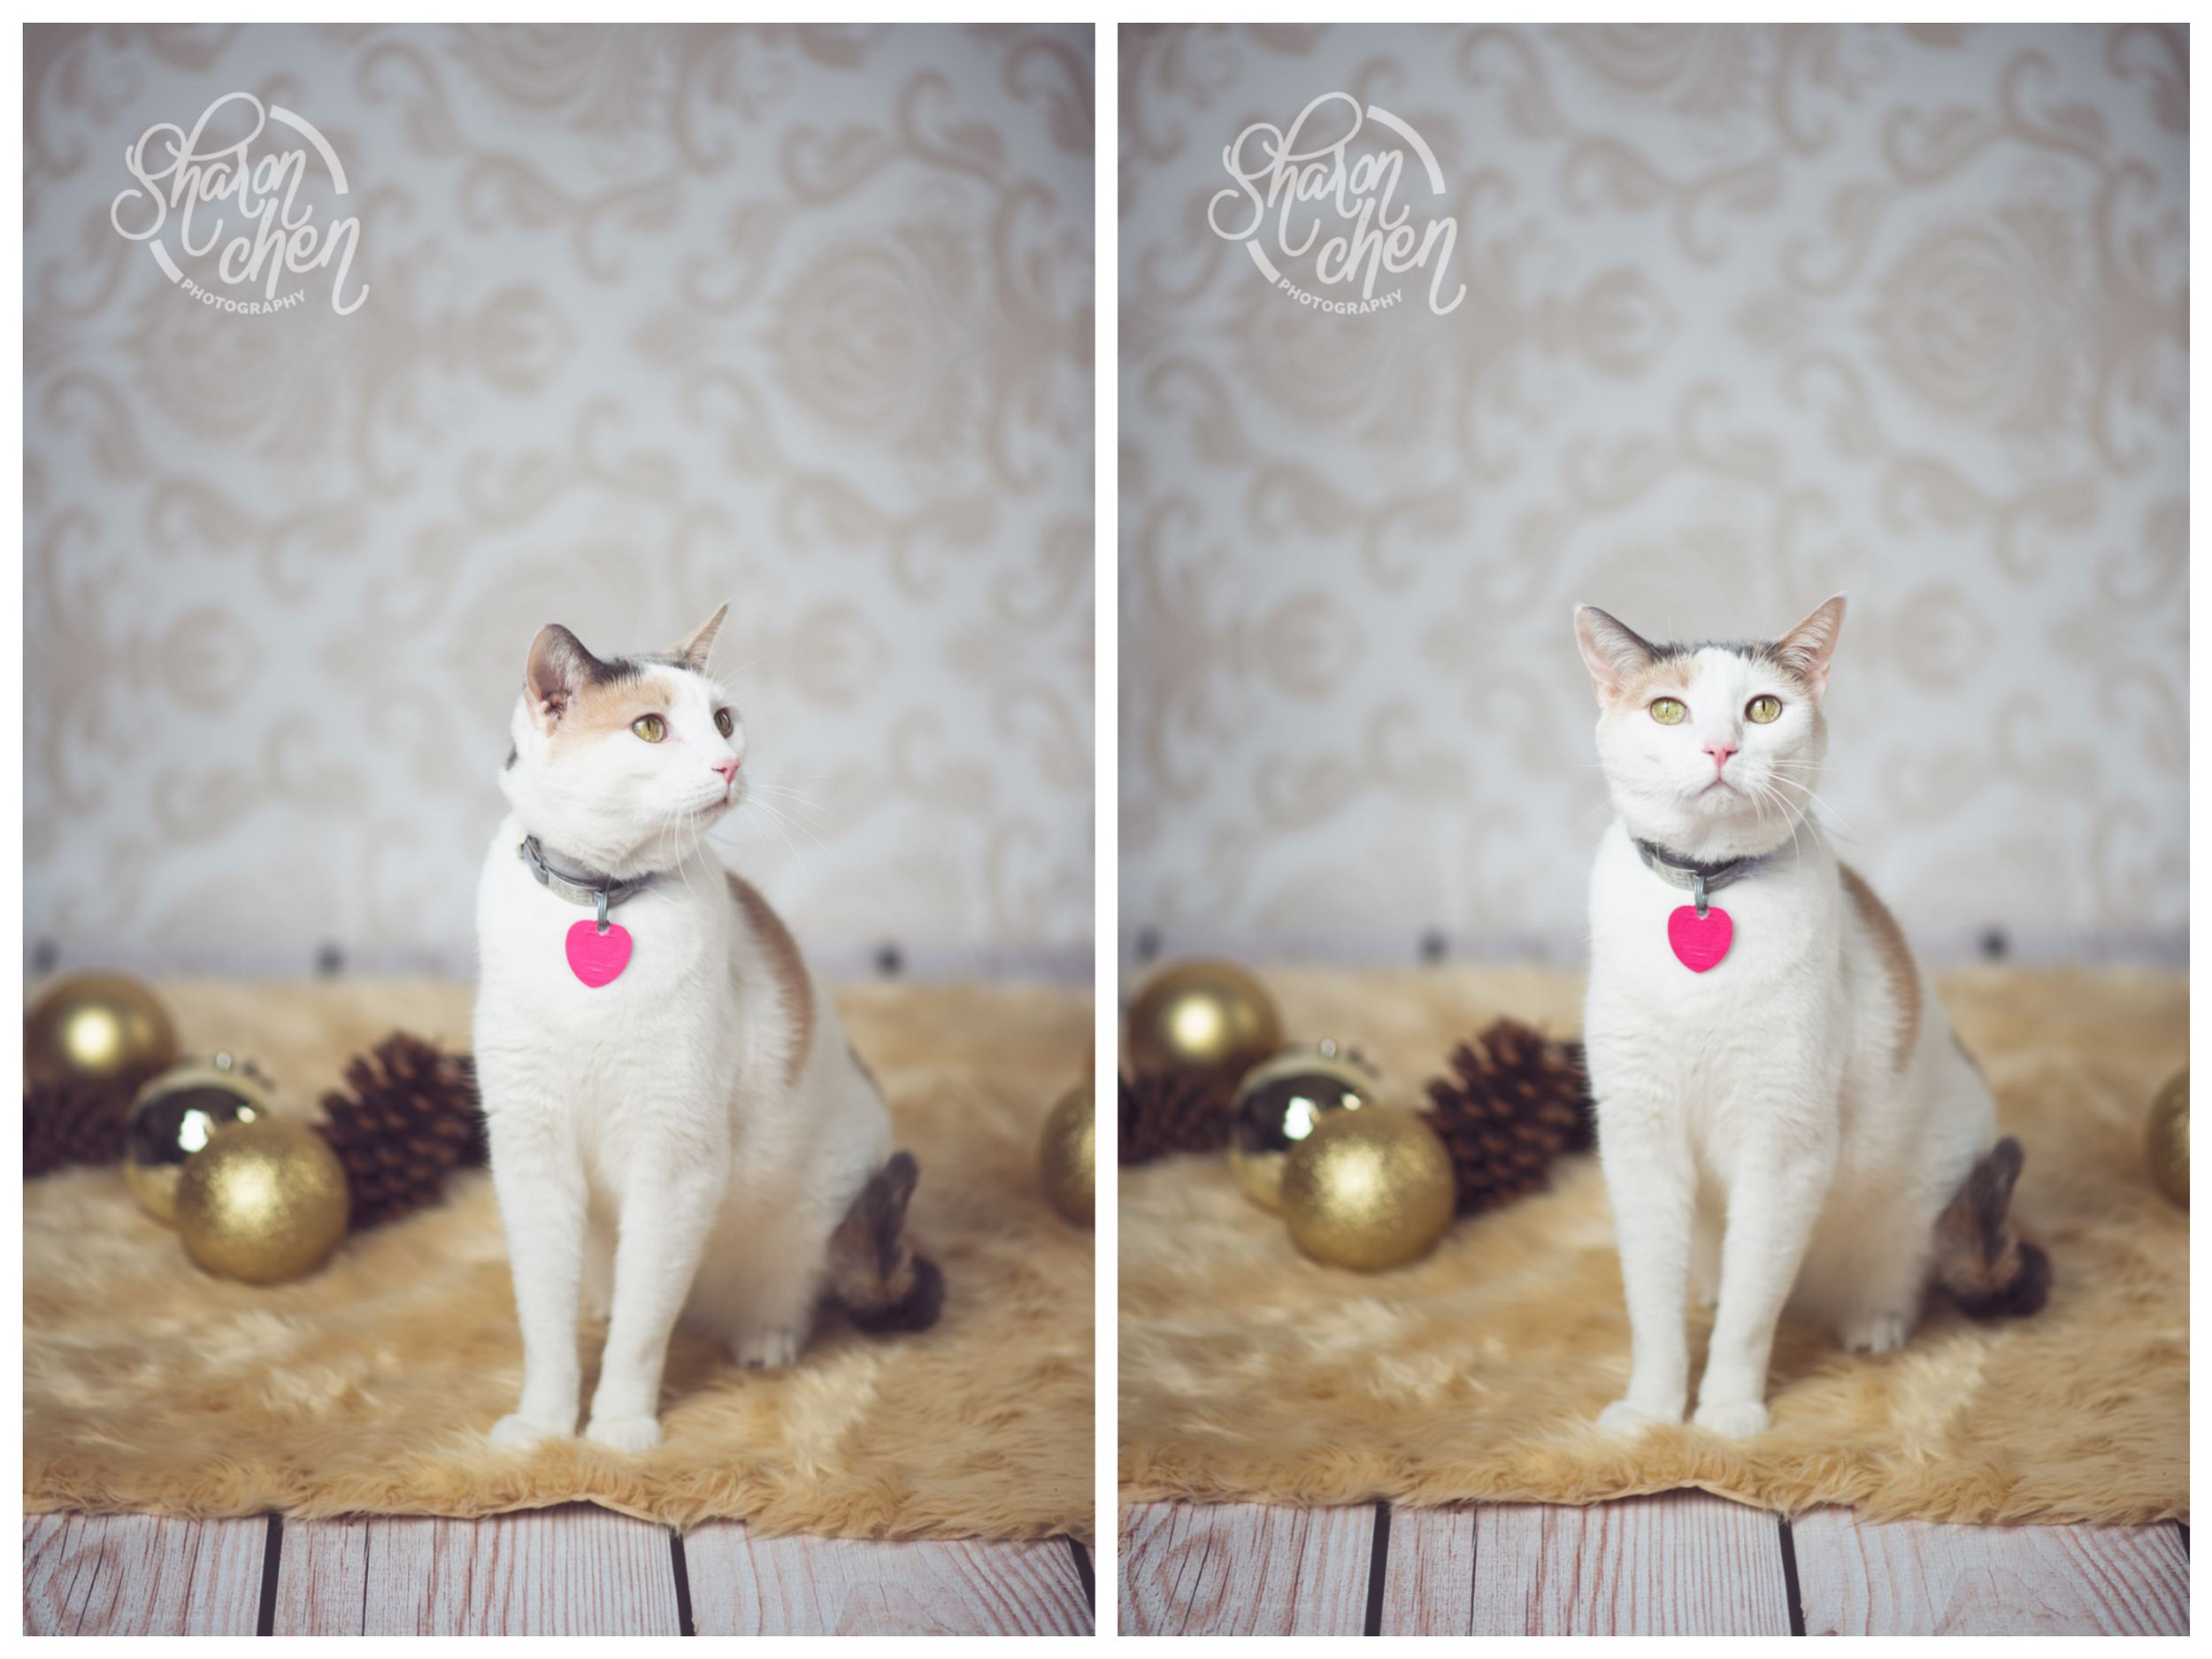 How they turned out in the end. Cute kitty!